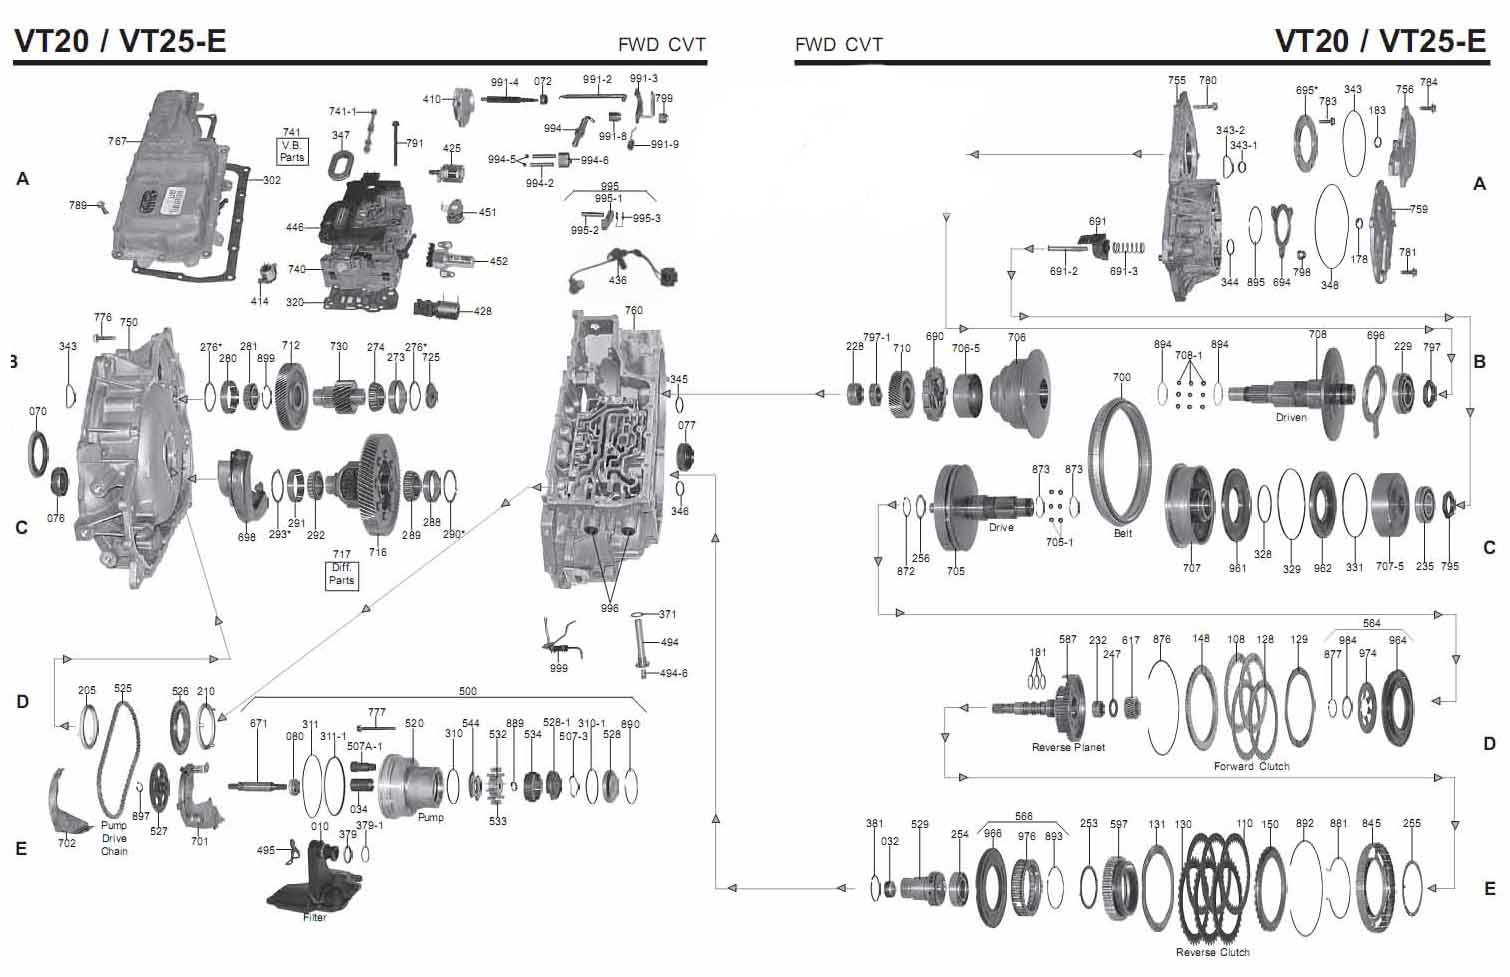 Transmission Repair Manuals Gm Vt25e Saturn